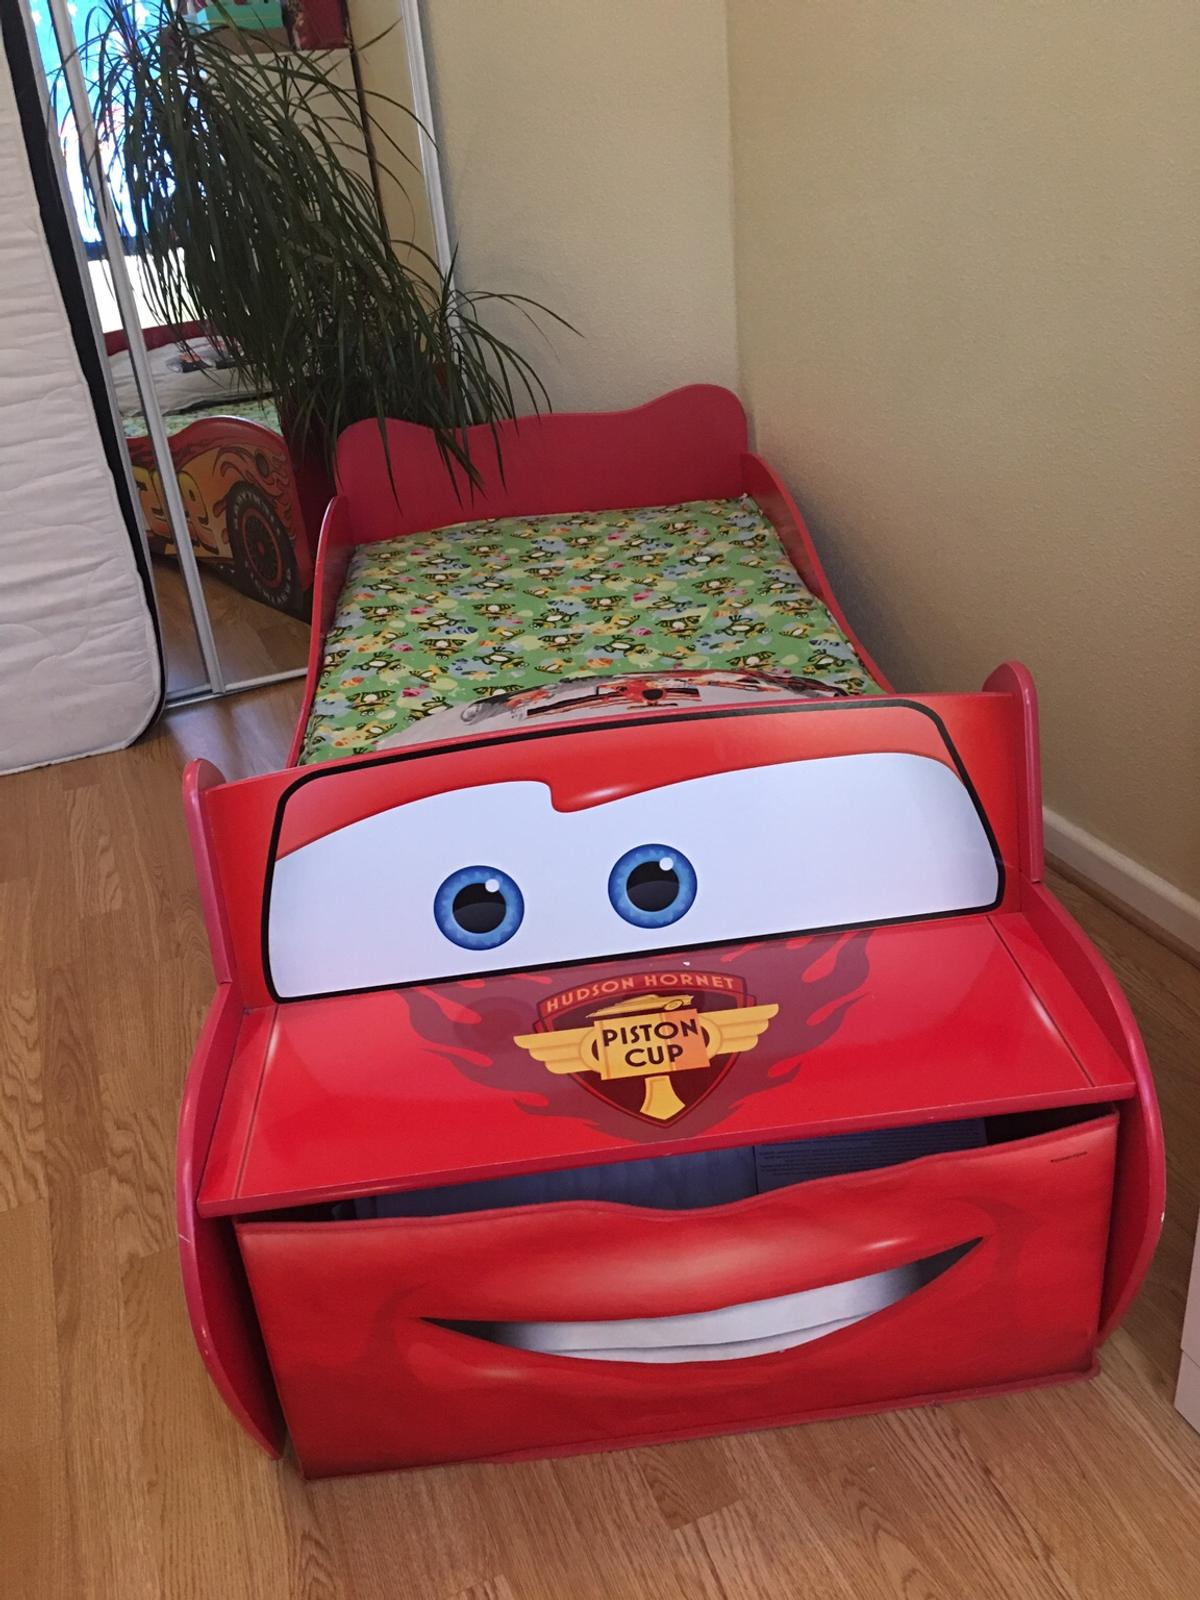 Suitable for up to 5-6 years In a very good condition Approx size: 54.4cm (H) x 76.7cm (W) x 169.5cm (L)  Hardly used, very clean mattress included (mattress size is 140cm (L) x 70cm (W) from Mothercare, washable cover. At front is space for under bed storage Low to the ground and with protective side panels Manual instruction included Can deliver locally